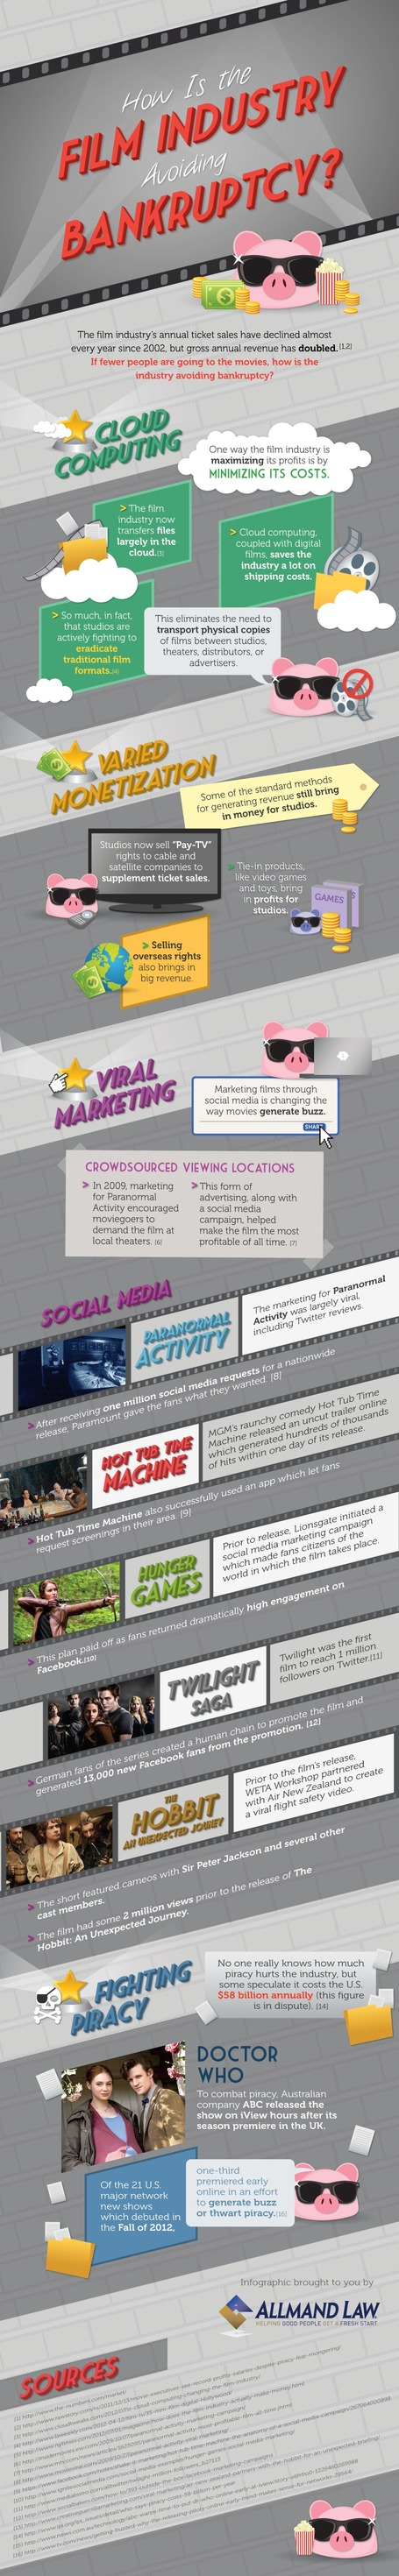 How Social Media and Viral Marketing are Saving the Film Industry [INFOGRAPHIC] | digitalassetman | Scoop.it